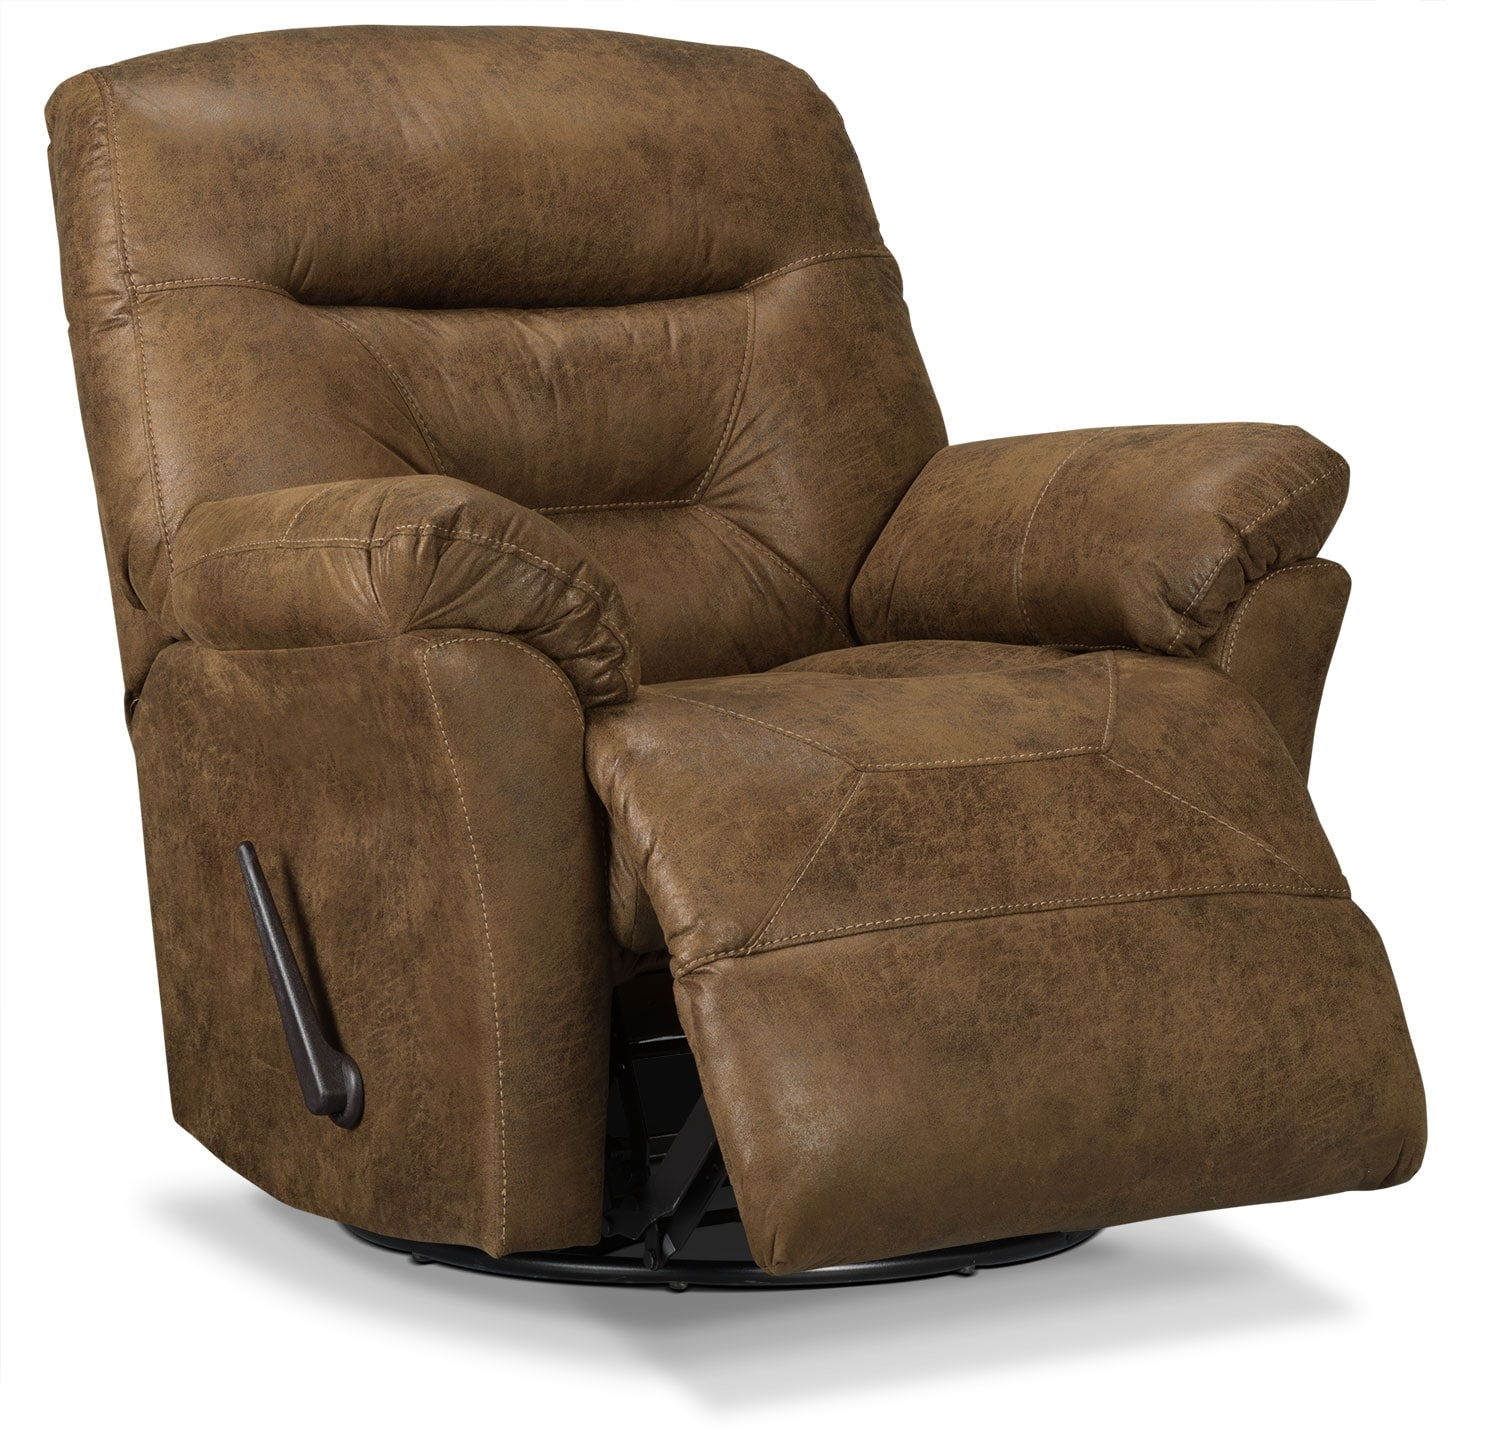 Designed2b Recliner 4579 Leather Look Fabric Swivel Glider